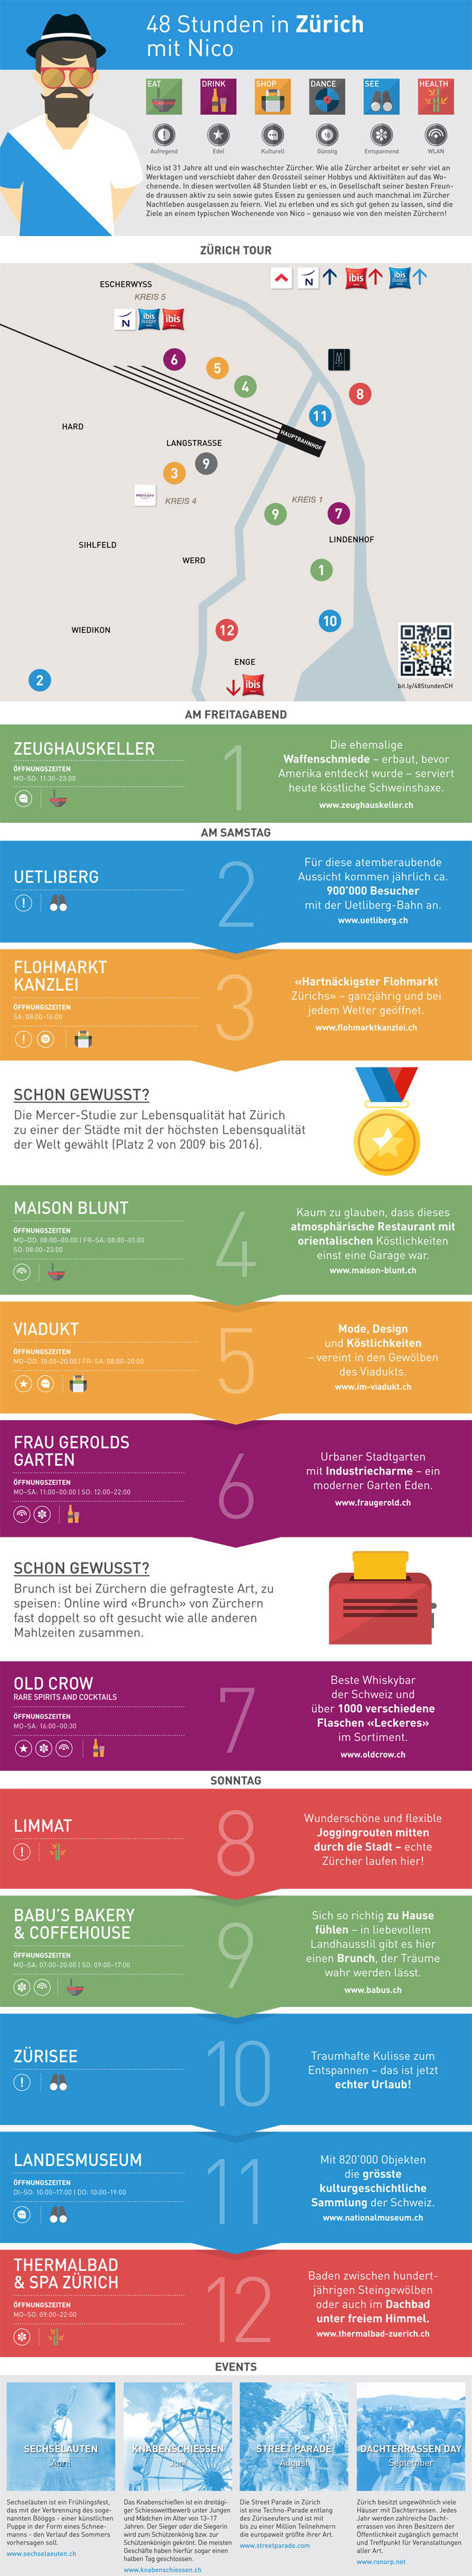 zurich infographics by Accorhotels.com